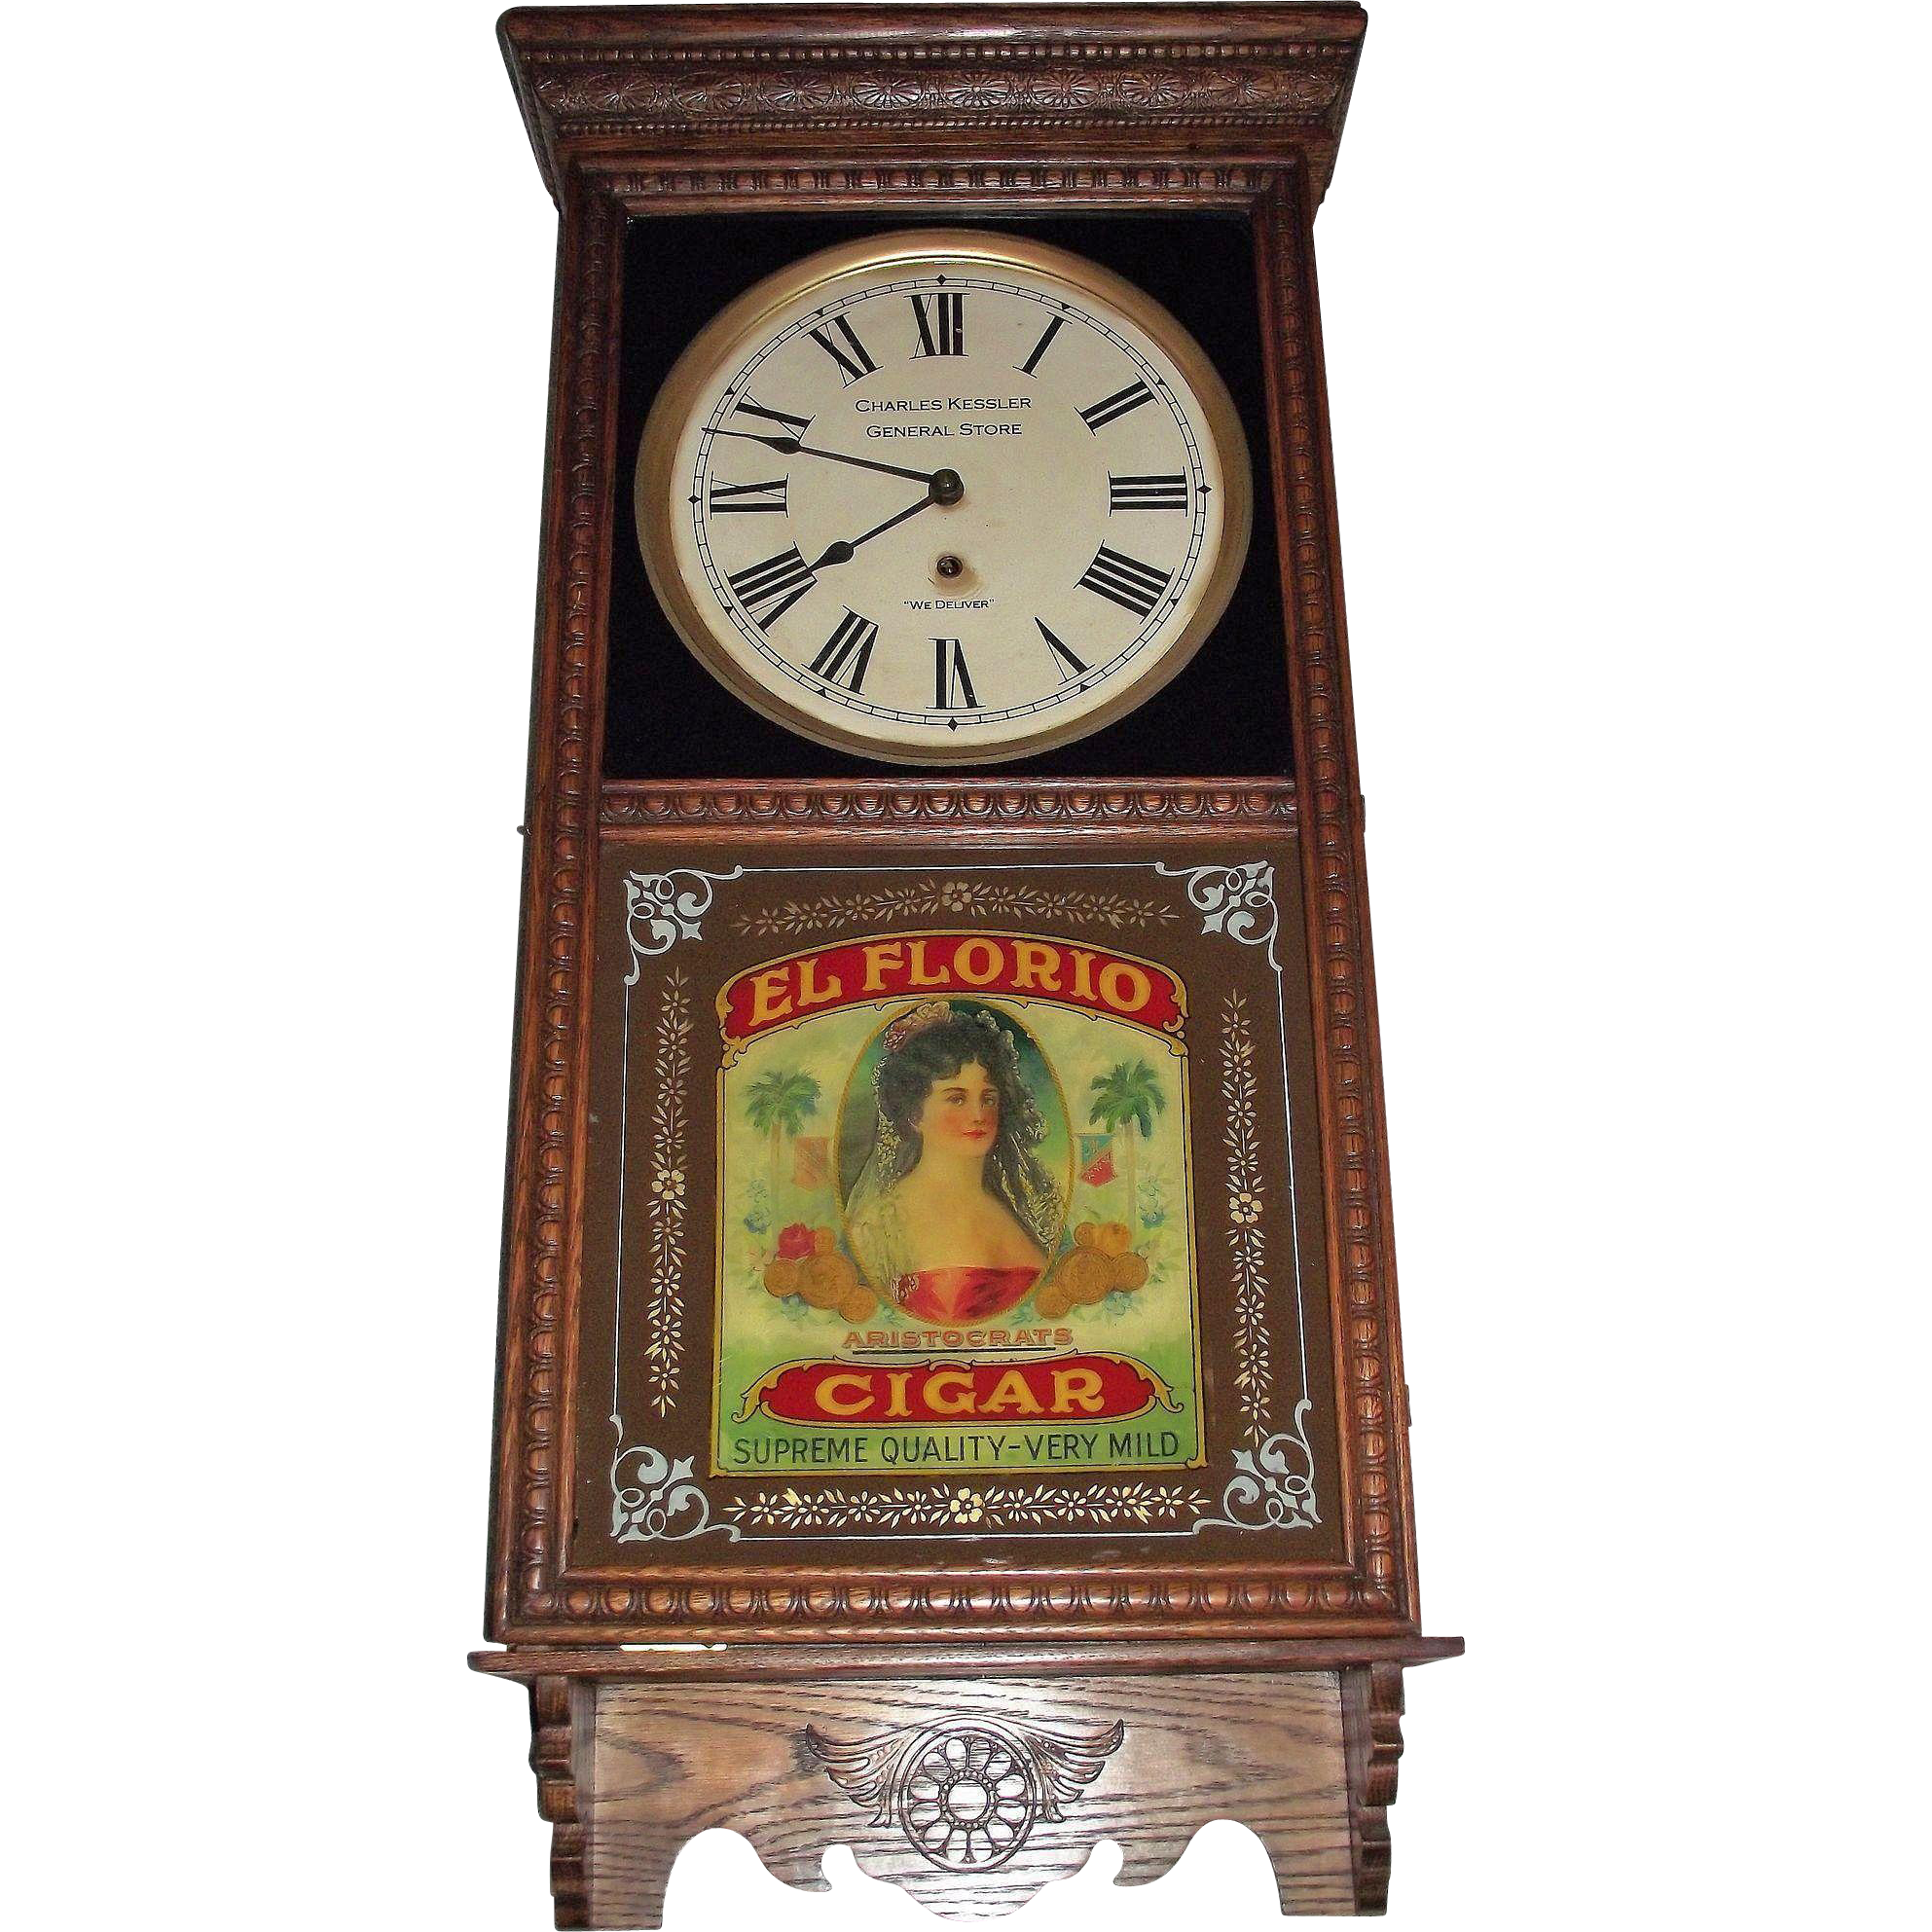 """El Floria * Aristocrat Cigars"" Advertising Clock from ""Charles Kessler's General Store"" in a Oak Case Circa 1925 !!!"